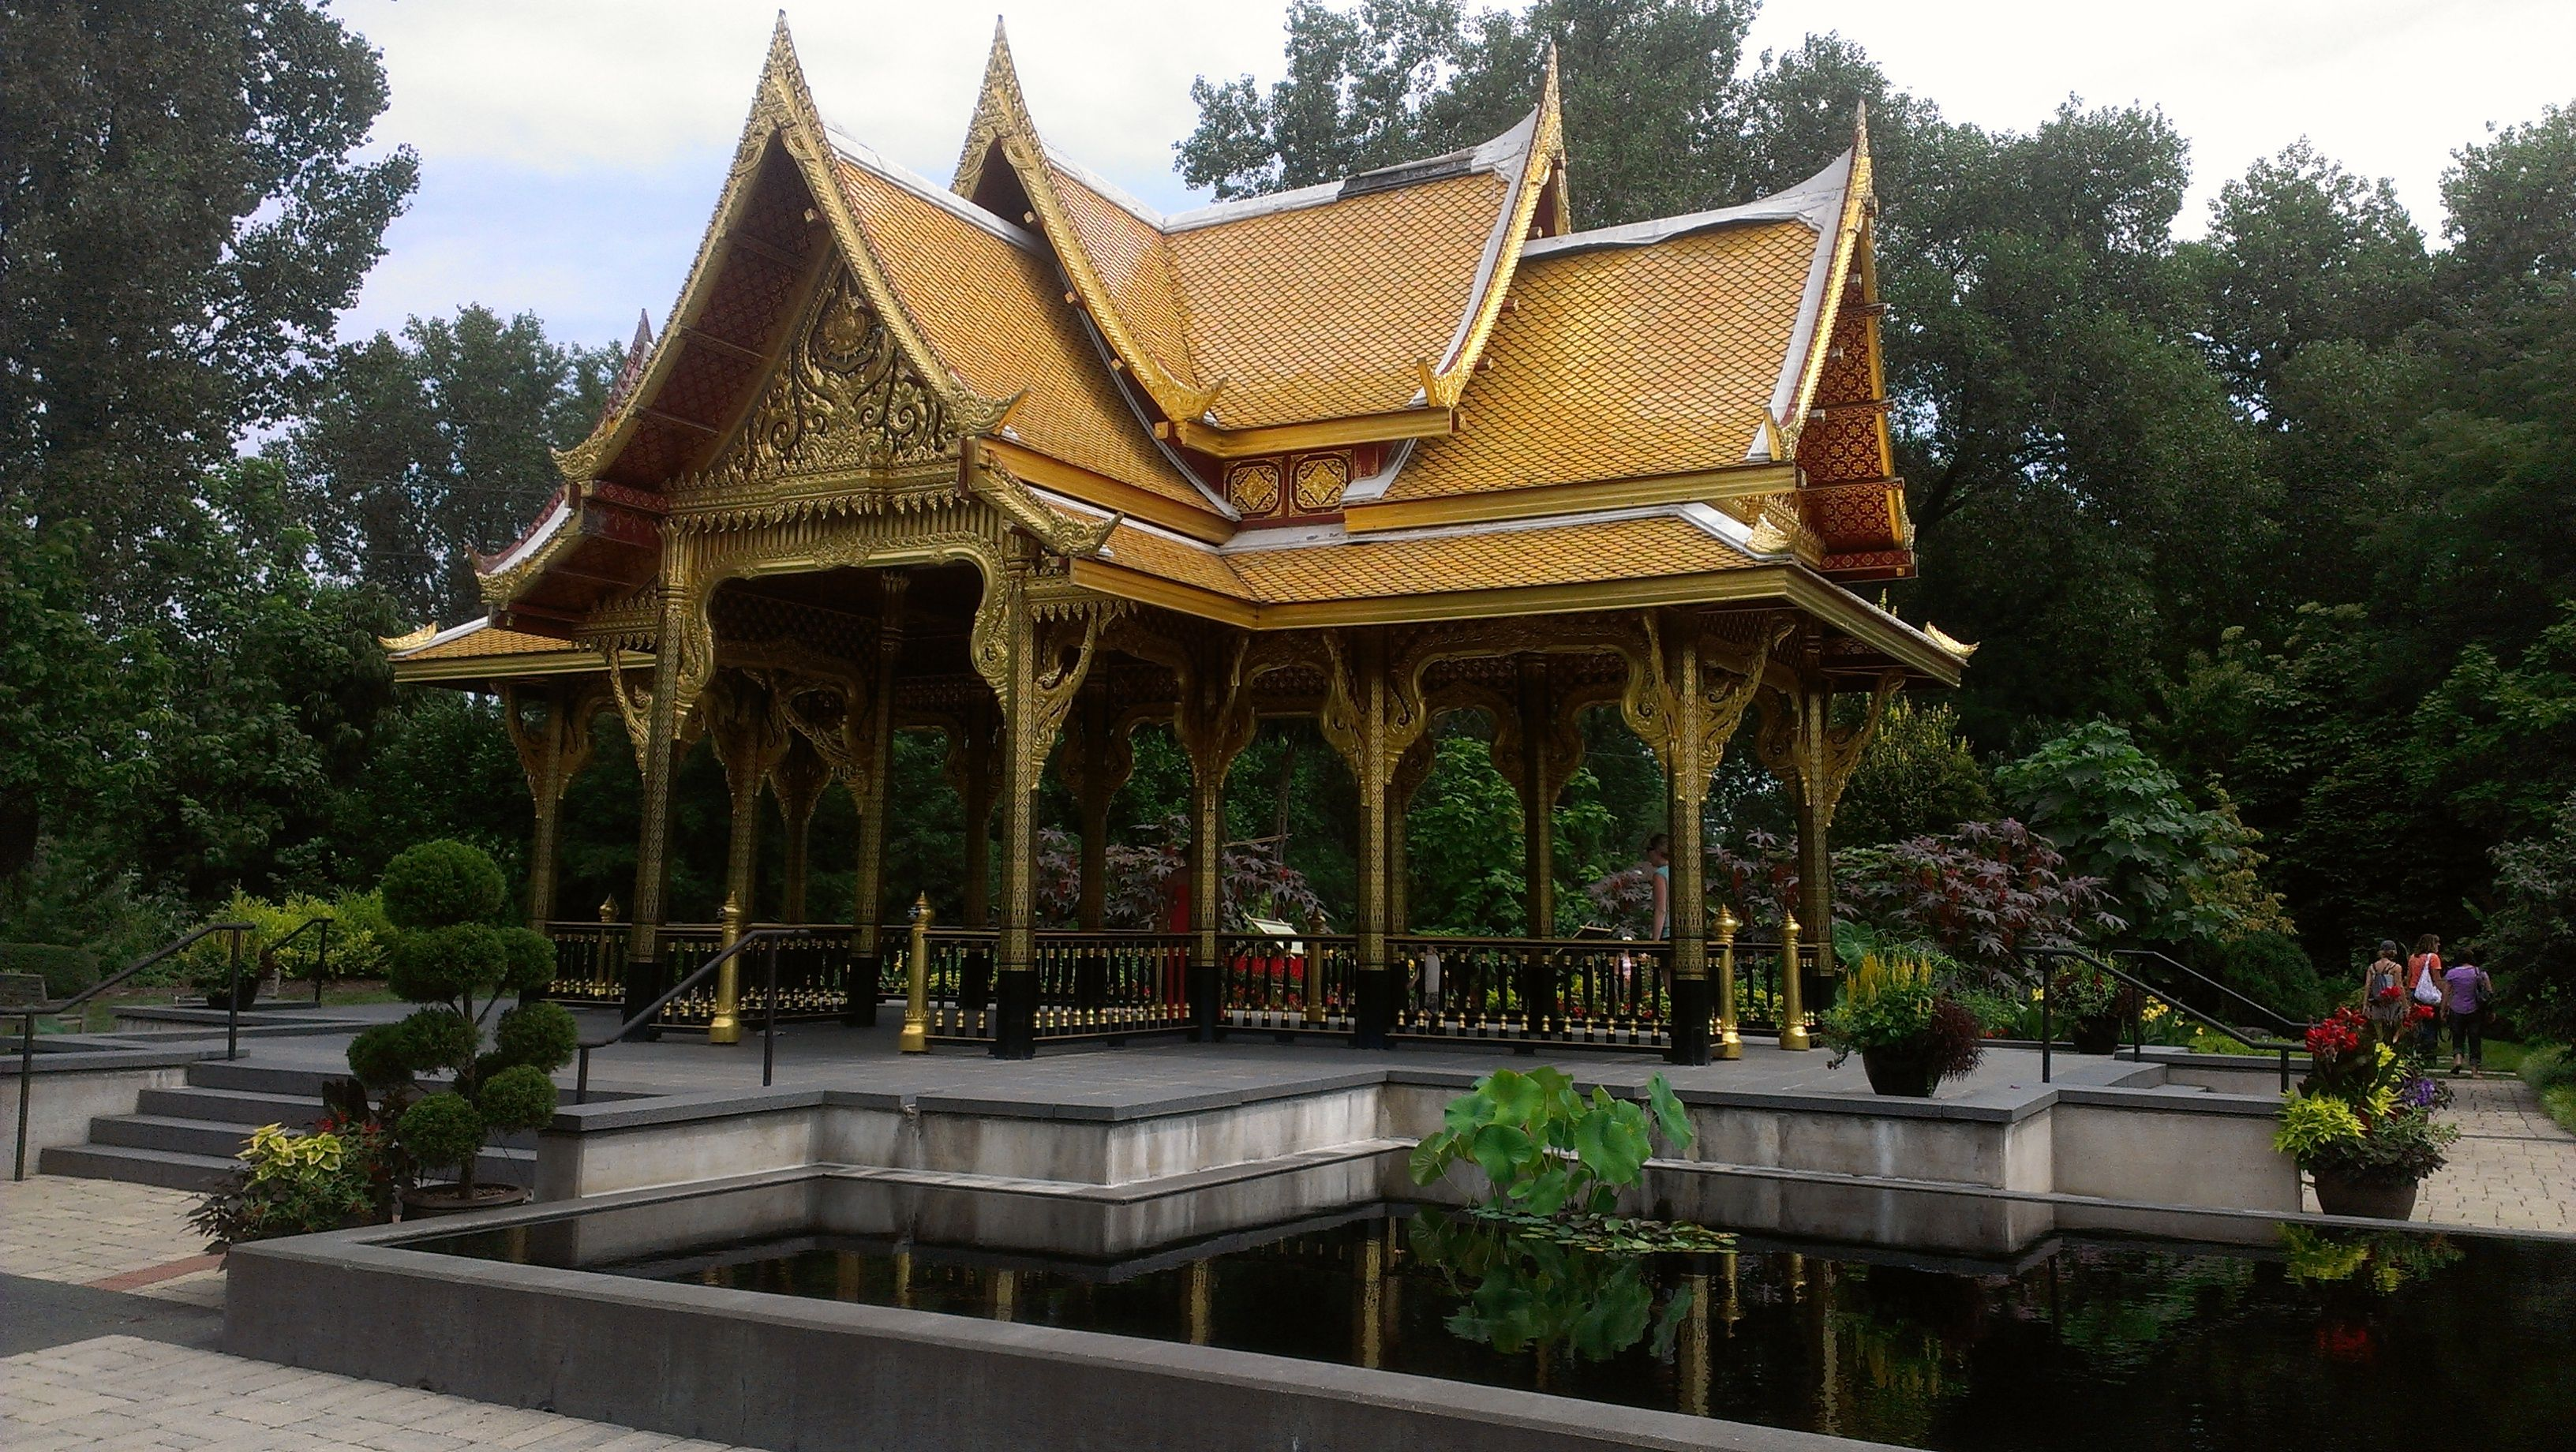 Fall Comes To Garden Of Thai Pavilion >> Olbrich Botanical Gardens This Exotic Thai Pavilion And Garden Is